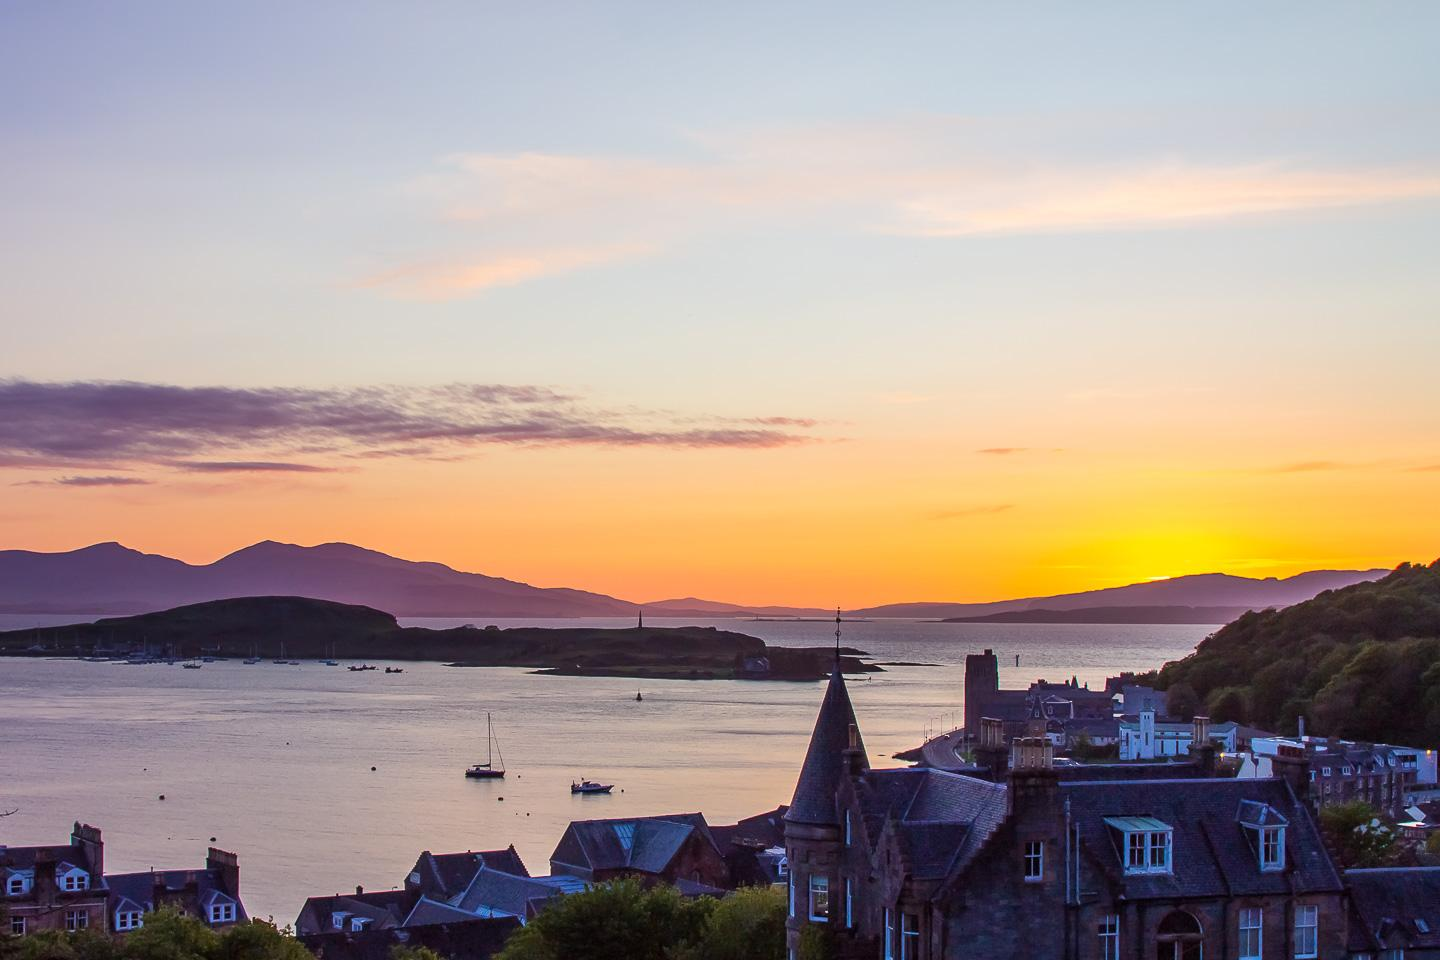 sunset oban scotland